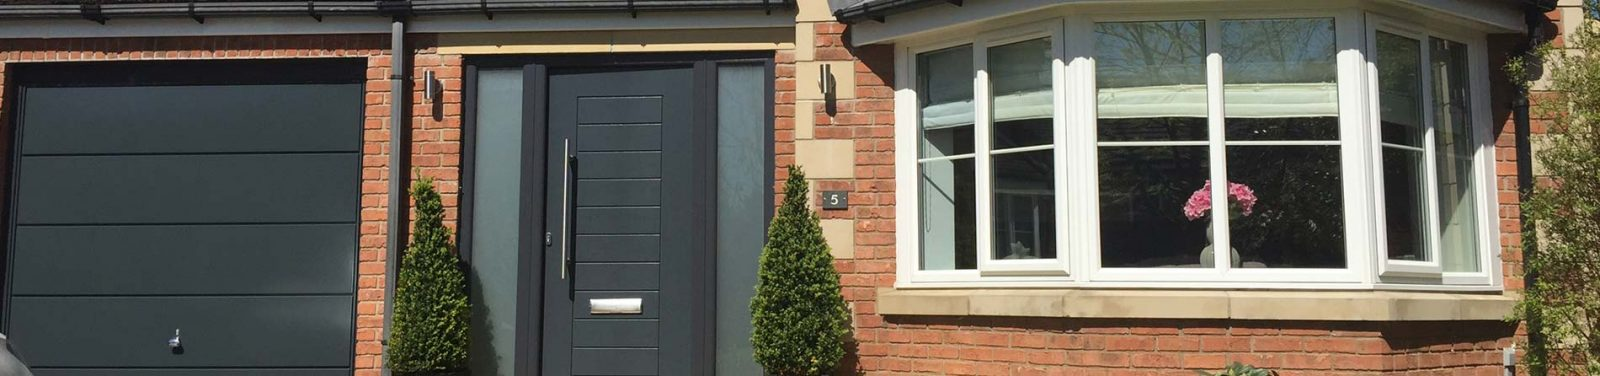 Composite Door Upvc Windows